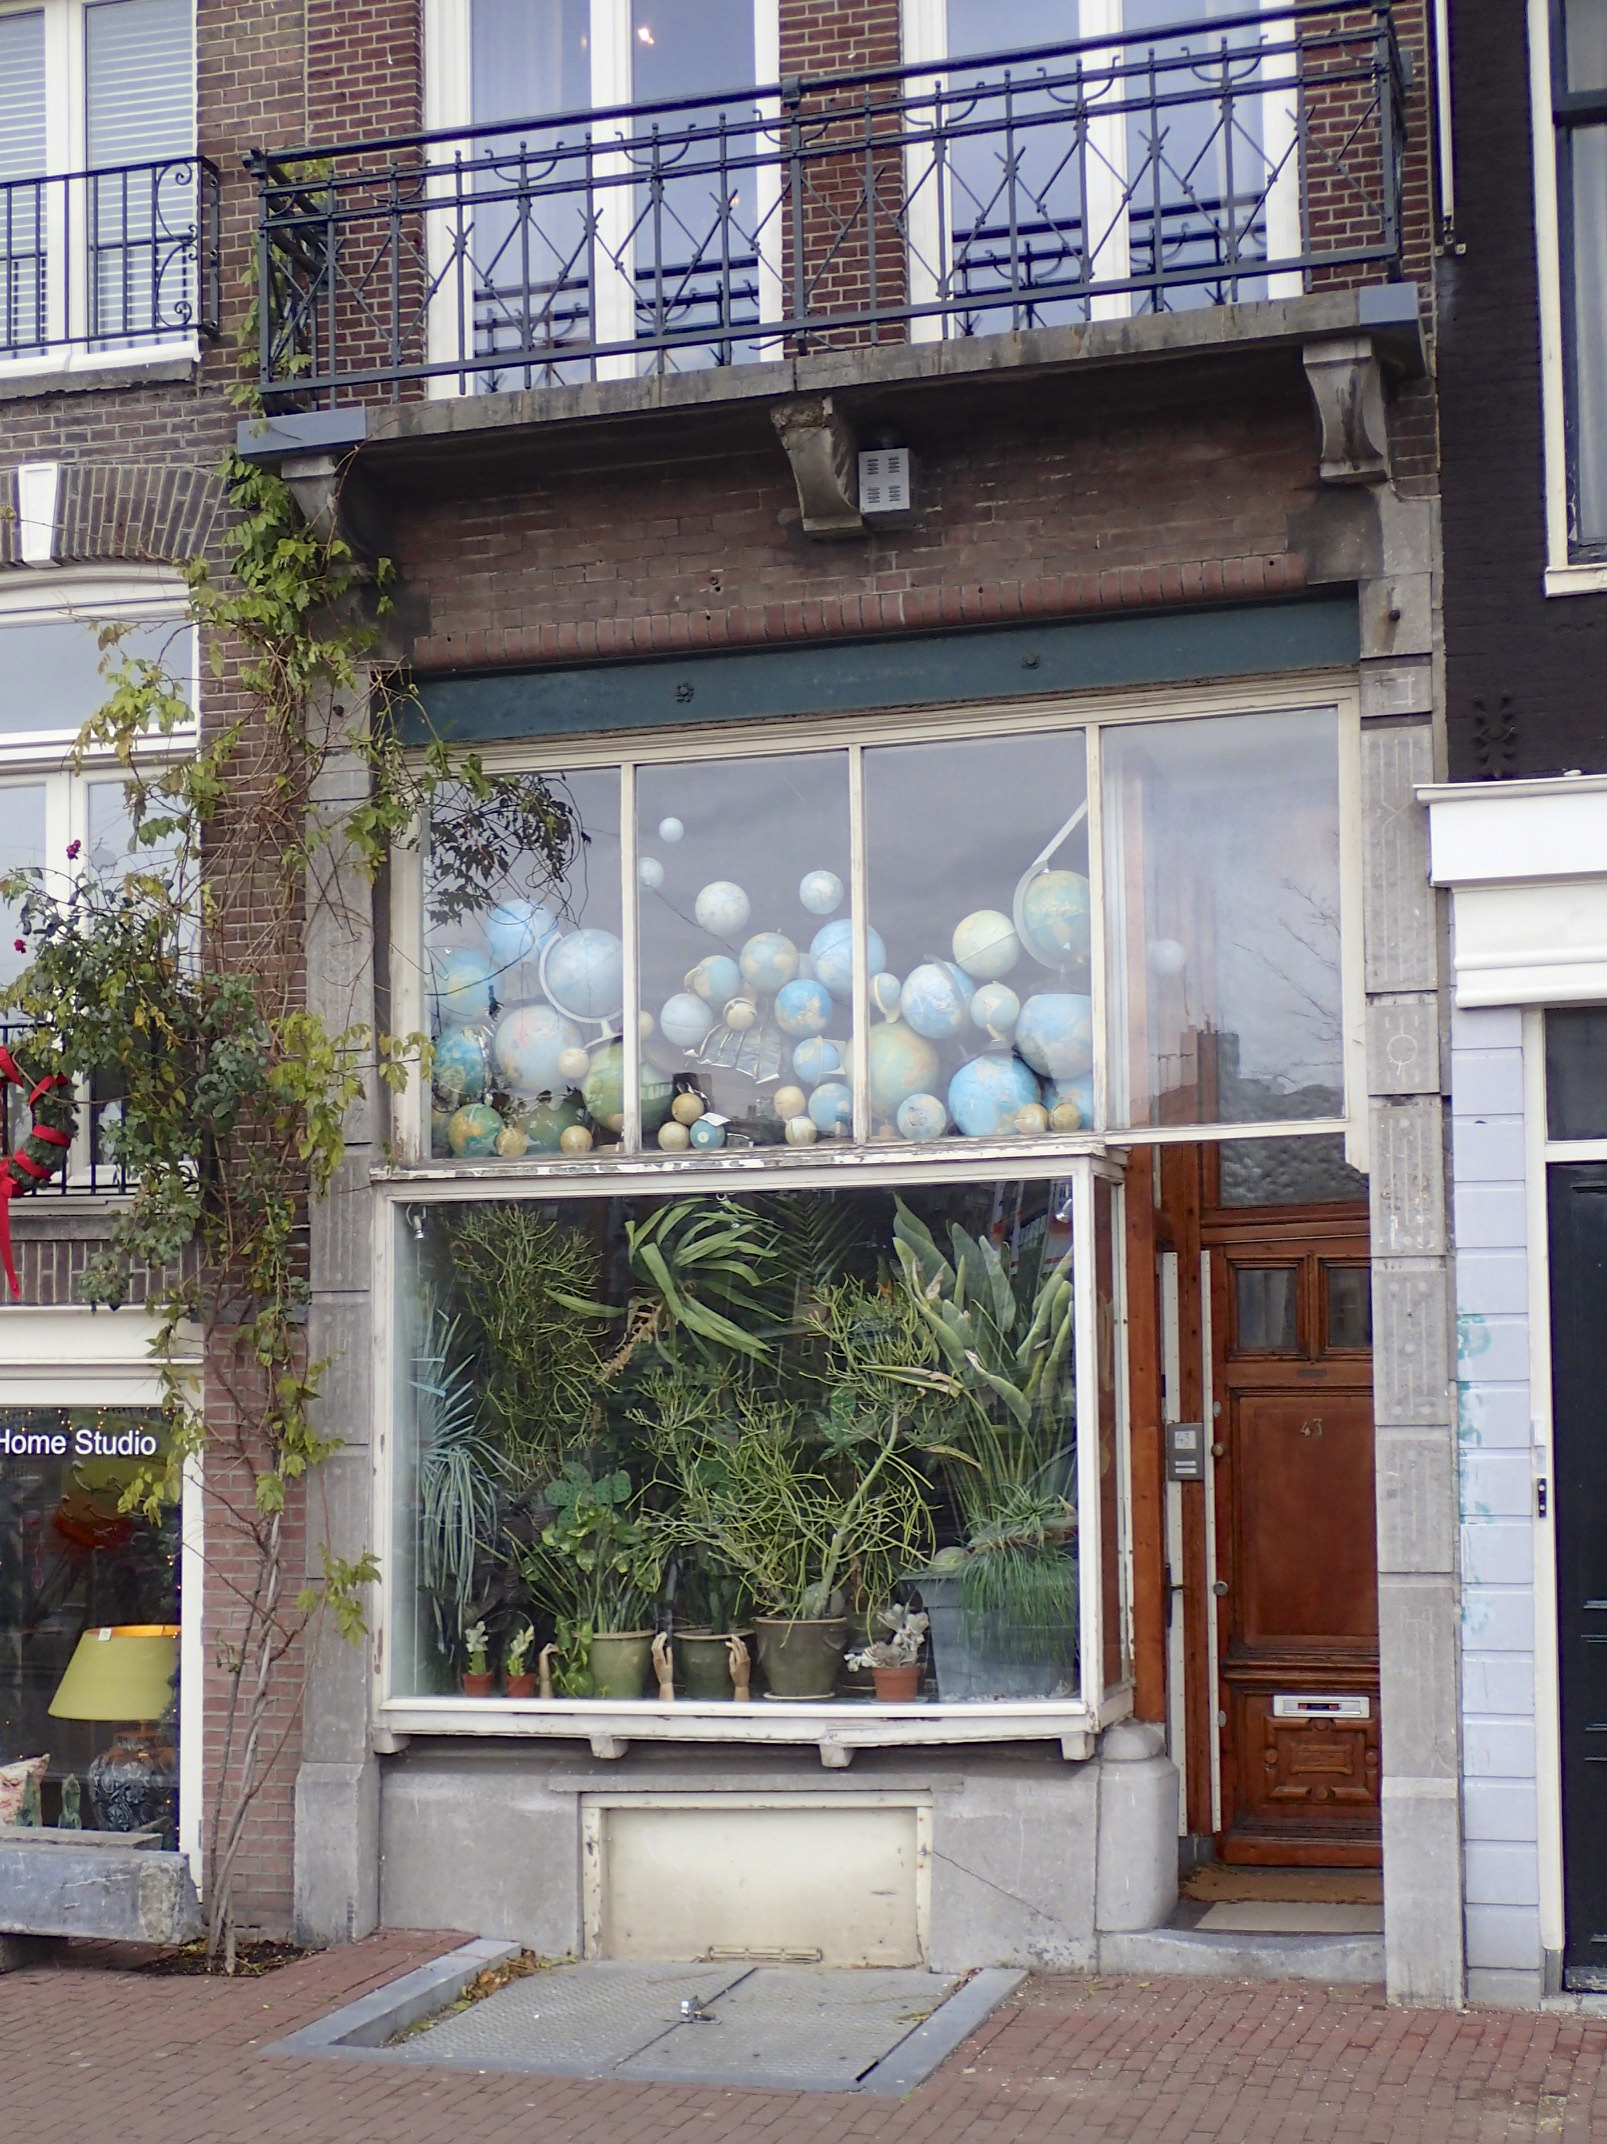 Global view in Amsterdam.